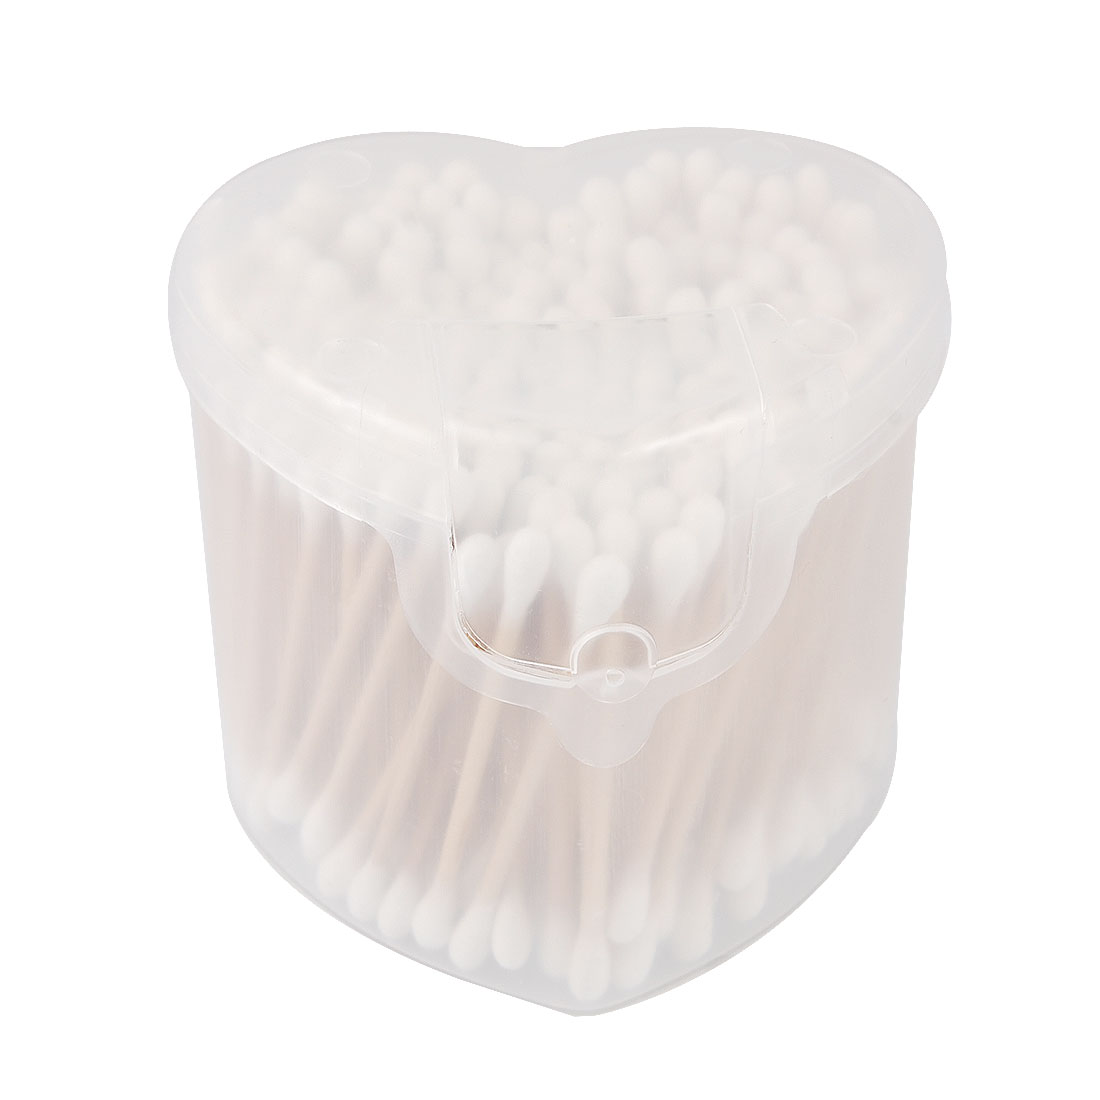 1 Pack Disposable Double Head Cotton Swab Bud White w Heart Shape Case